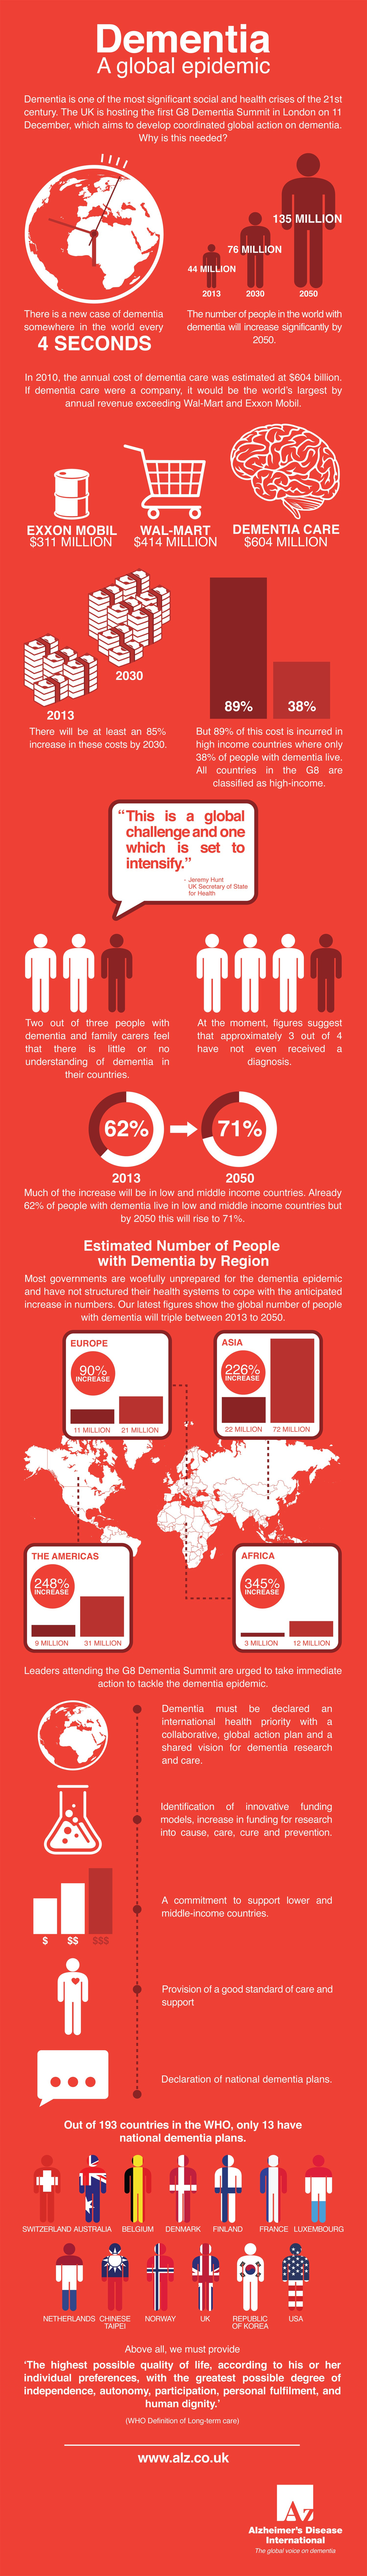 Dementia Global Epidemic Infographic